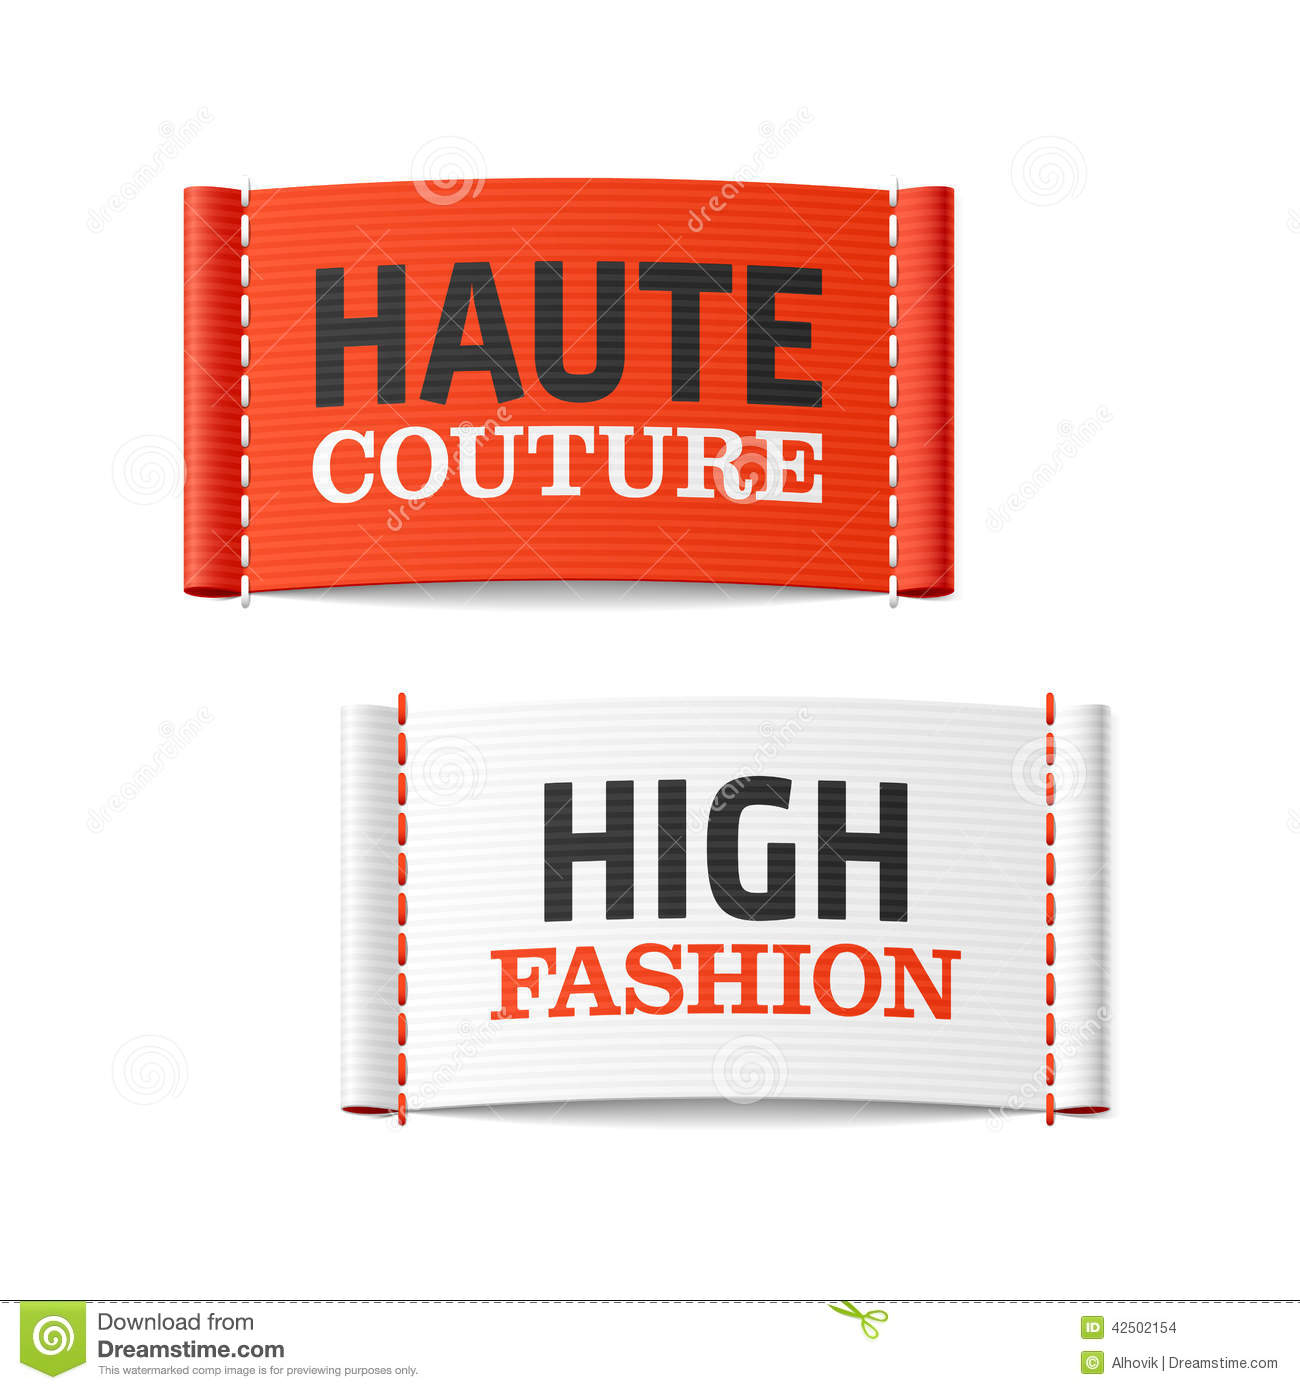 Haute couture and high fashion clothing labels stock for Haute couture labels